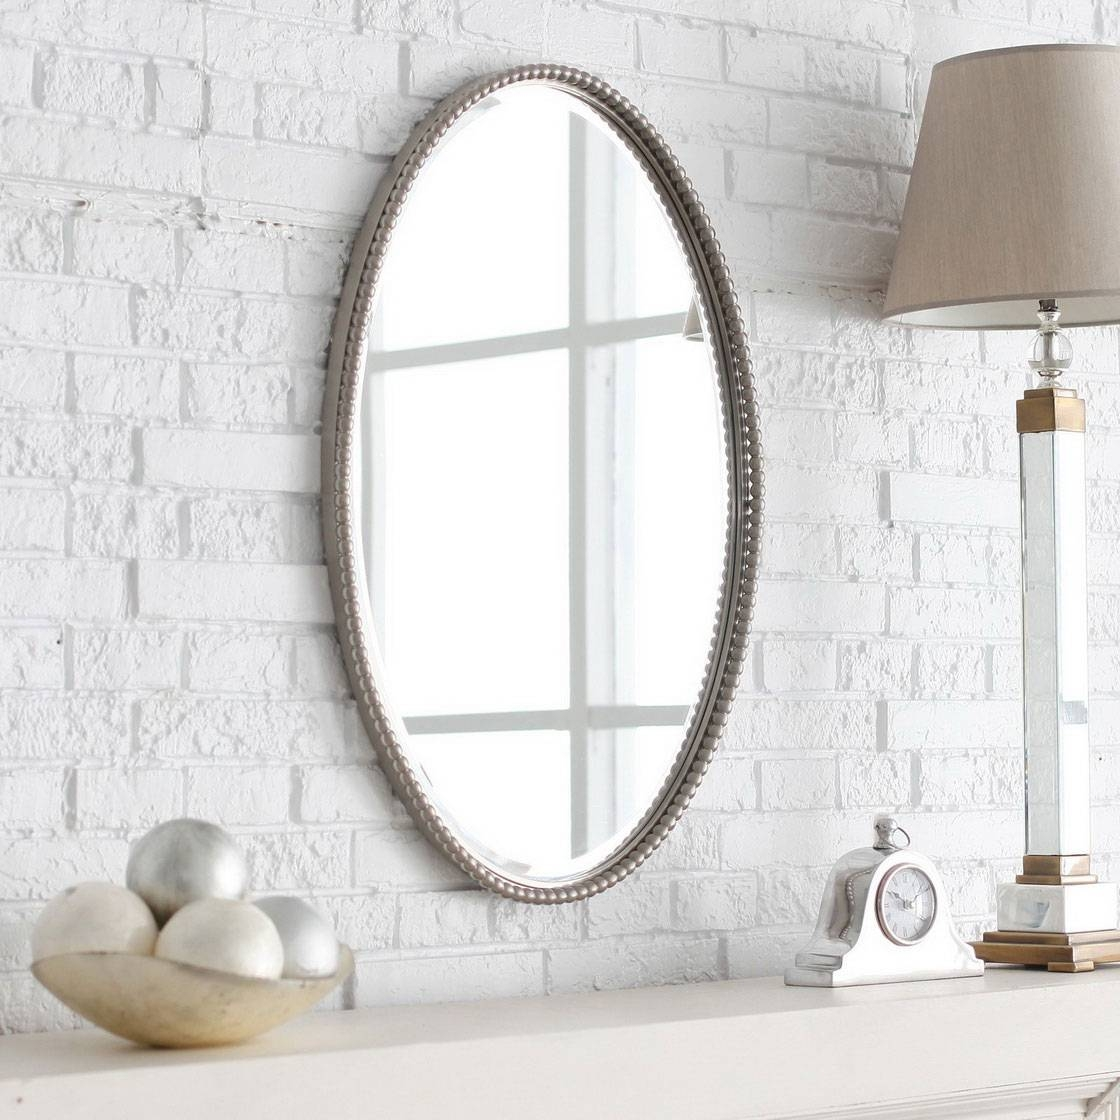 Large Oval Mirrors For Bathroom Walls | Home inside Large Oval Mirrors (Image 13 of 25)